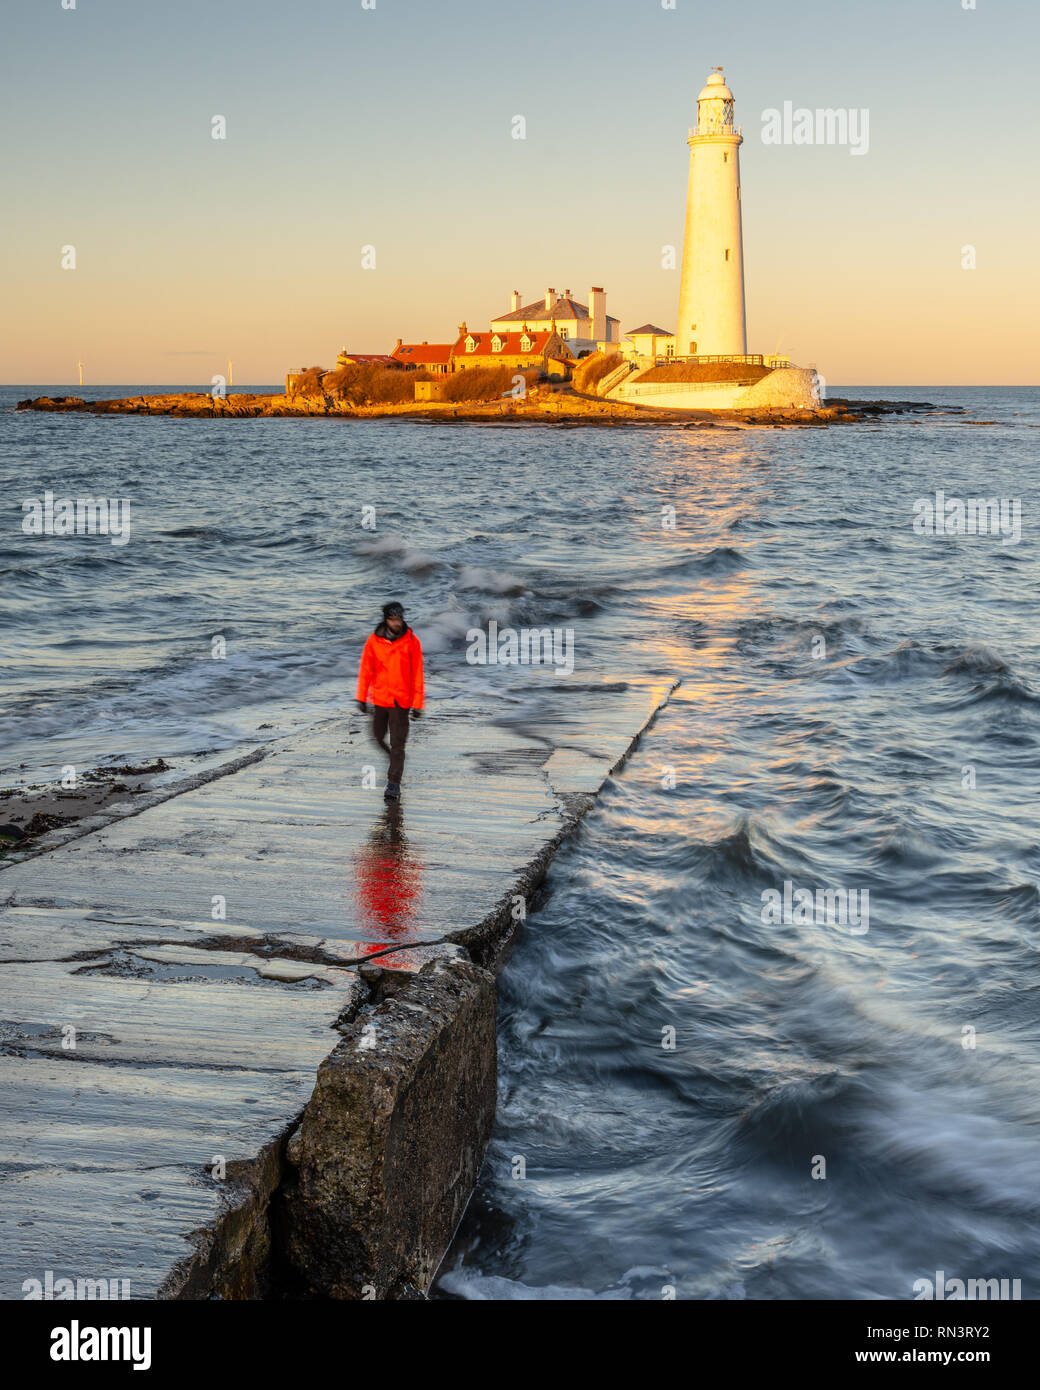 A man stands on the St Mary's Island Causeway while the setting sun illuminates St Mary's Lighthouse on the coast of Whitley Bay in Tyneside. Stock Photo